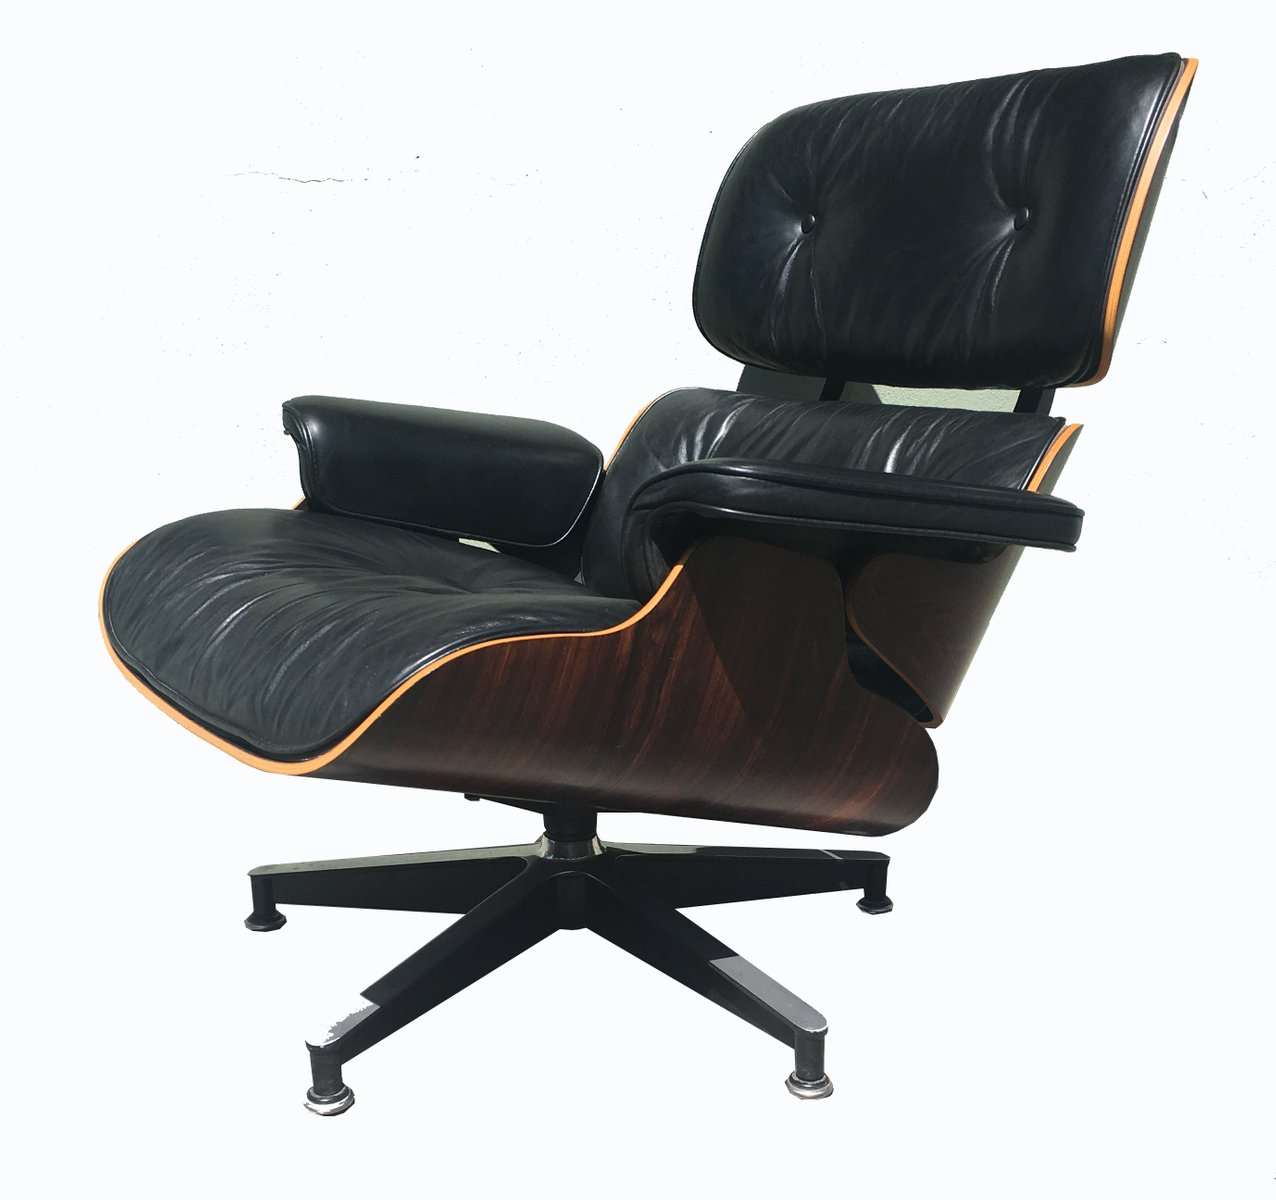 670 671 lounge chair ottoman by charles and ray eames for Charles eames lounge chair preisvergleich